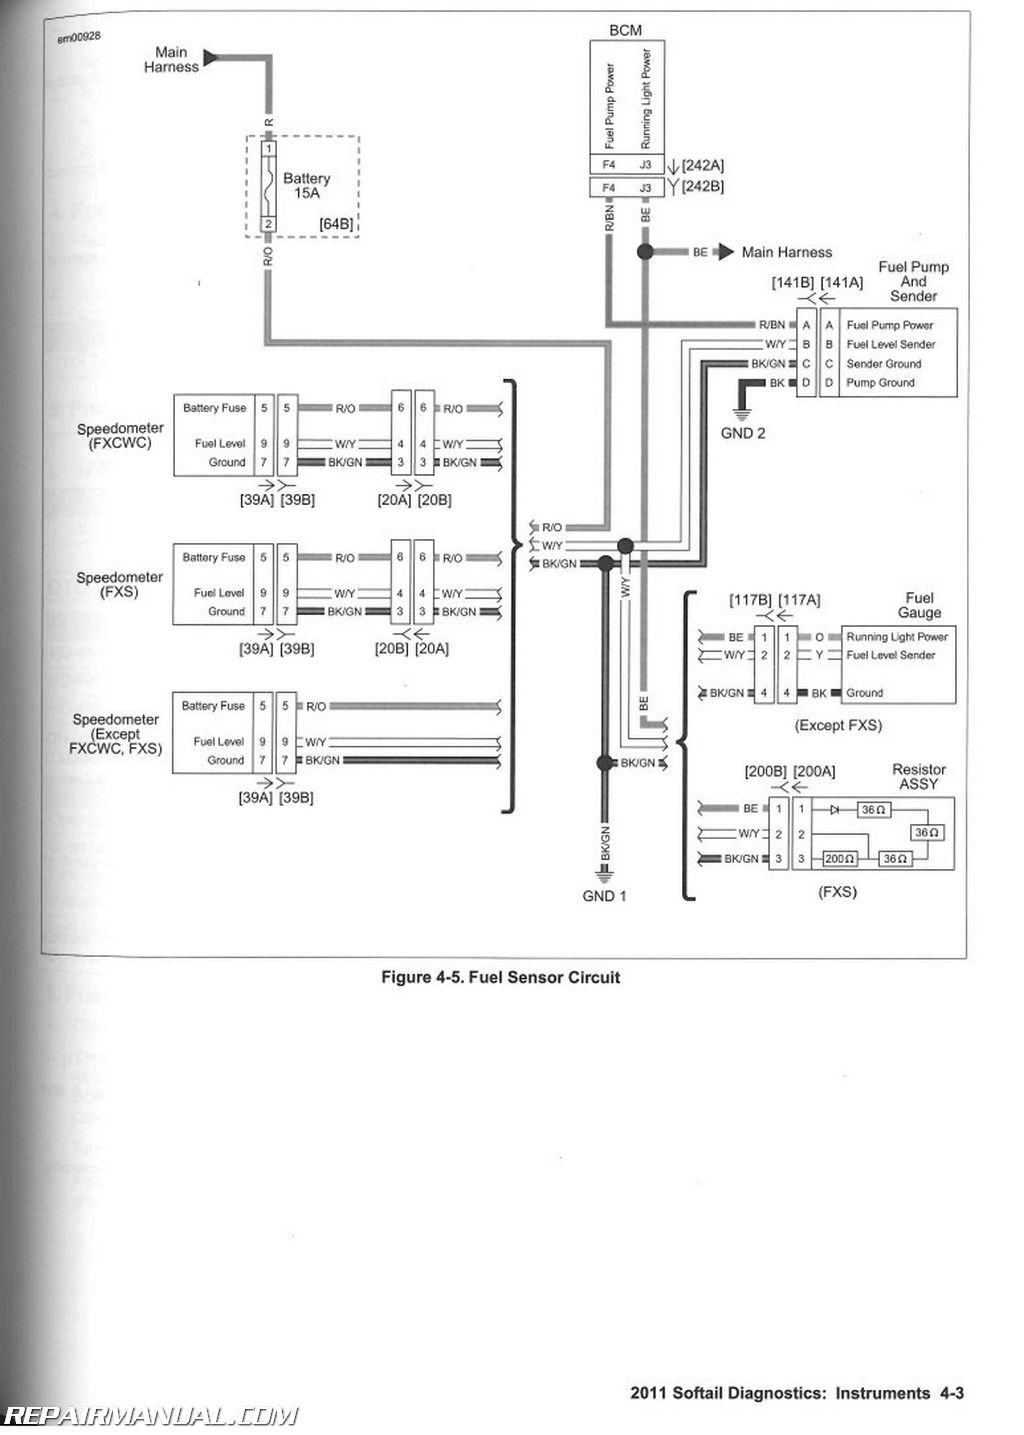 2011 Flhx Wiring Diagram Schemes 1988 Harley Softail Ignition Sportster Rh Aiandco Co 12 1990 Flhtc